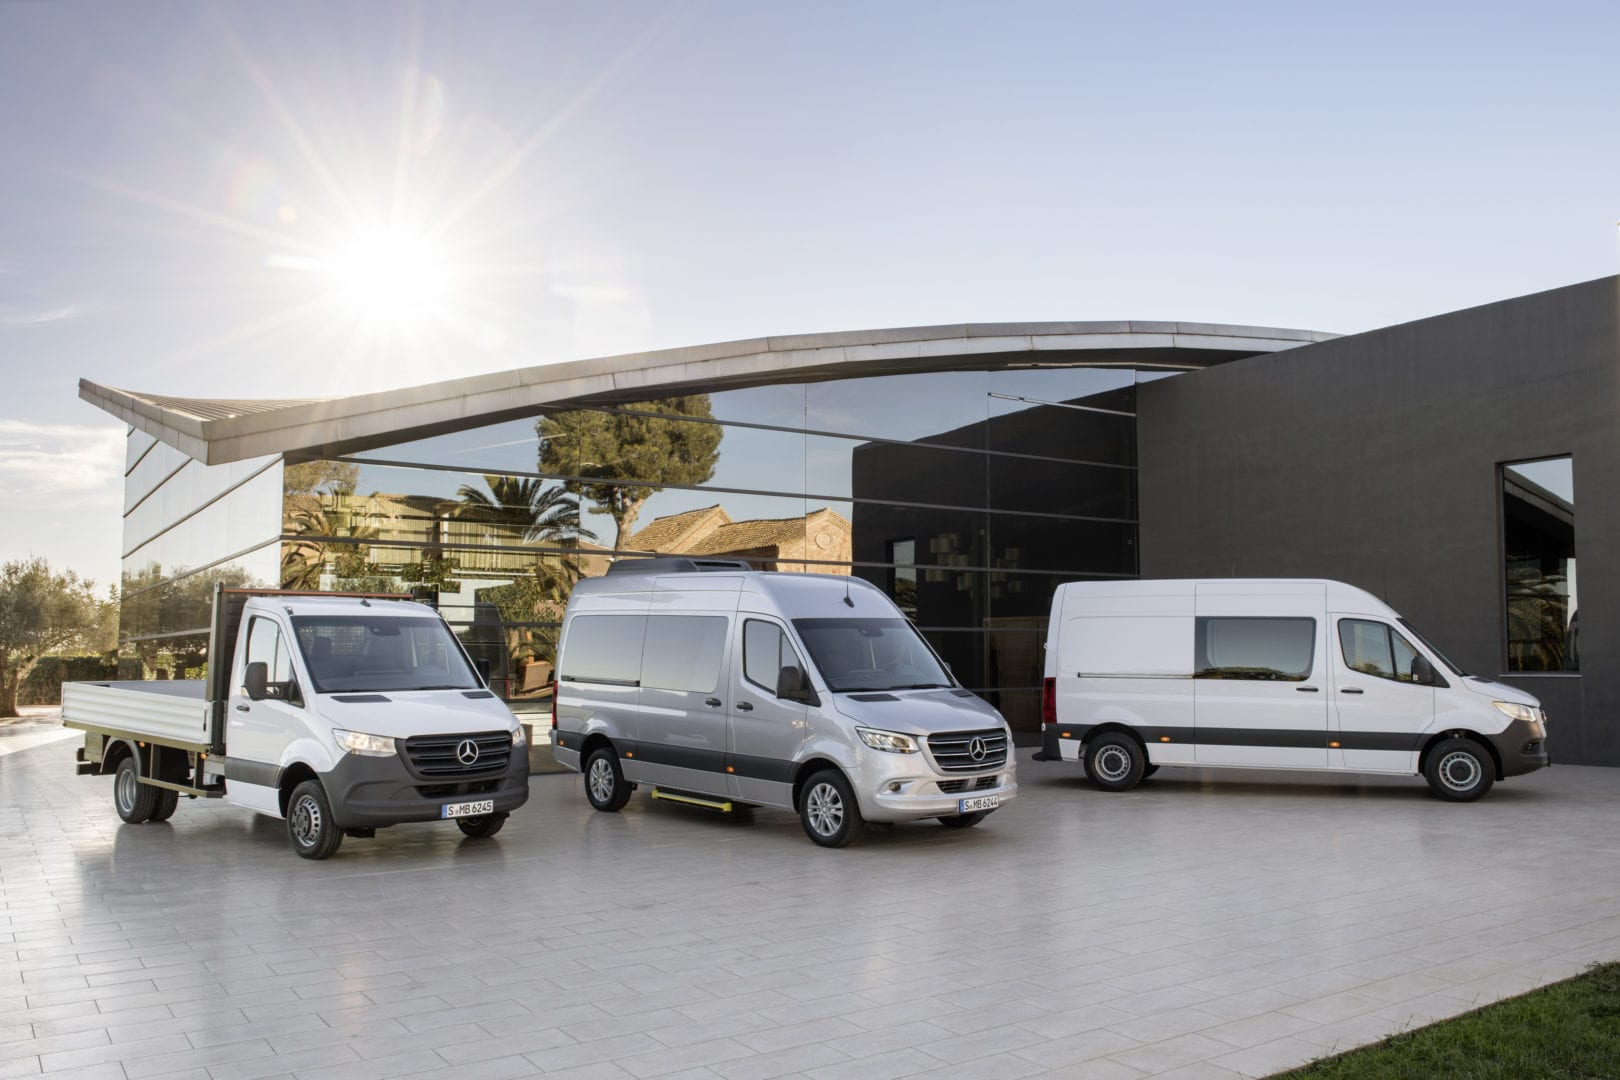 Mercedes benz will debut redesigned sprinter van for New mercedes benz commercial